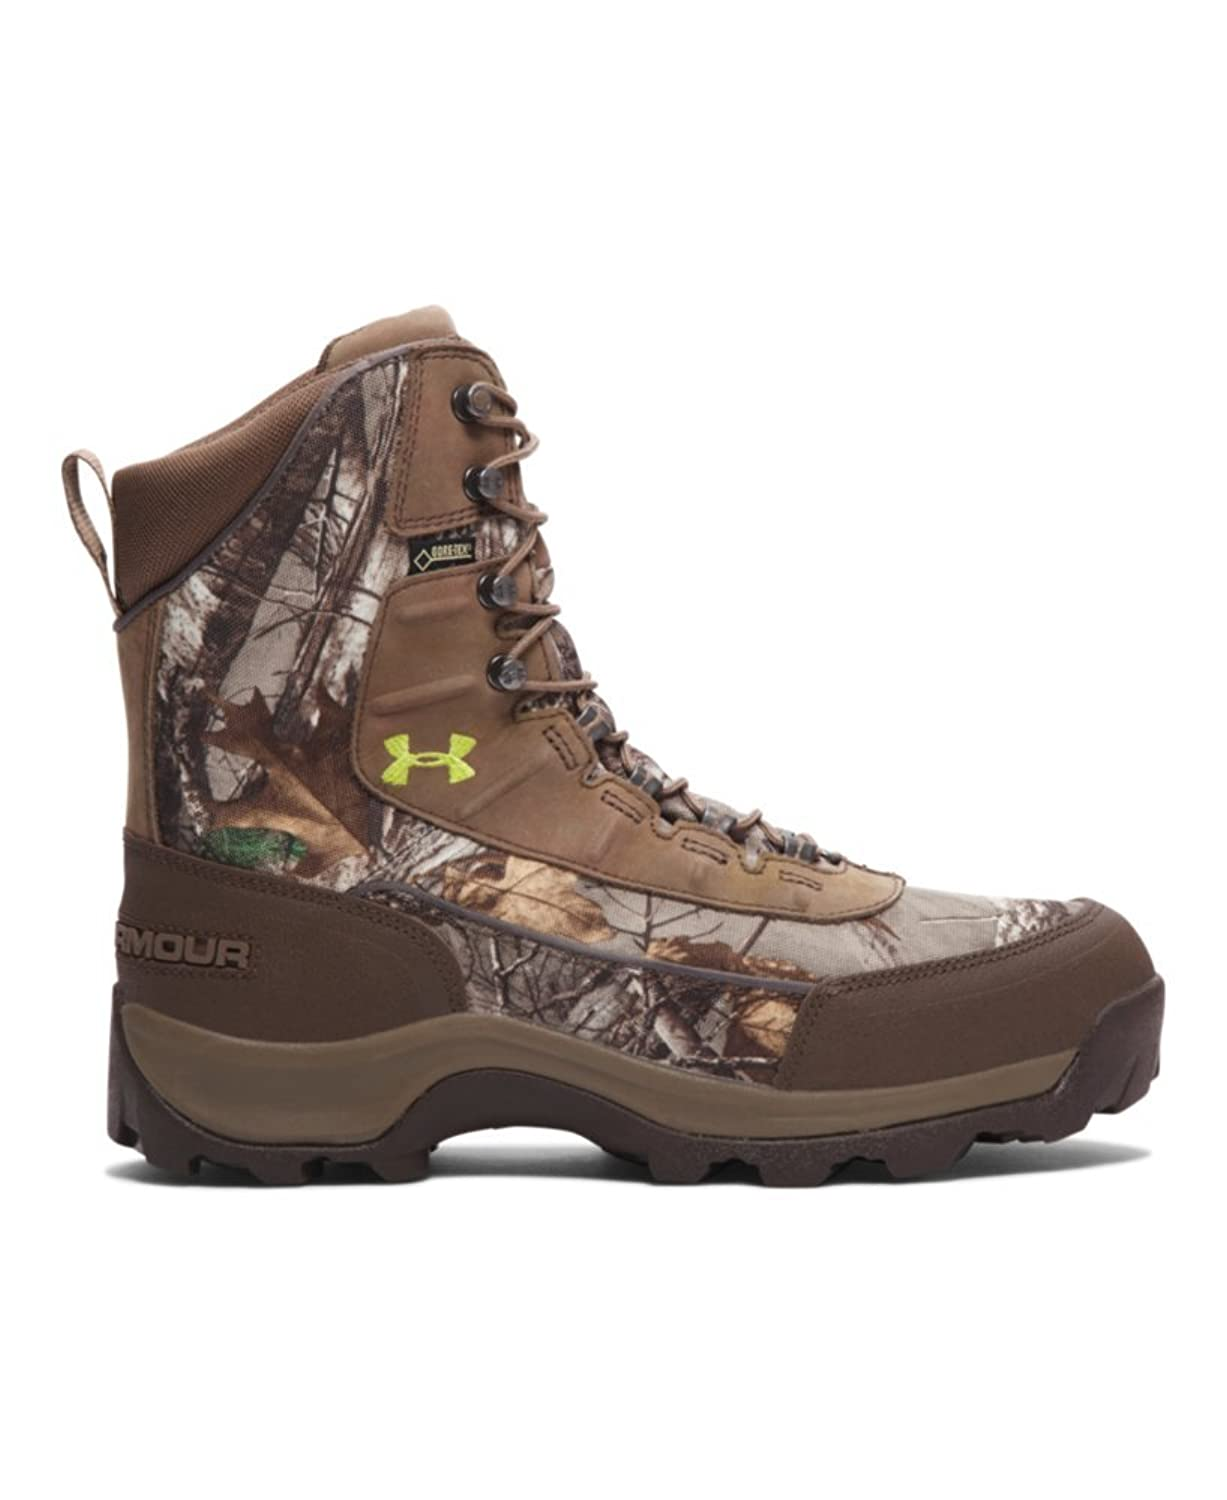 Under Armour Men's UA Brow Tine – 400g Hunting Boots